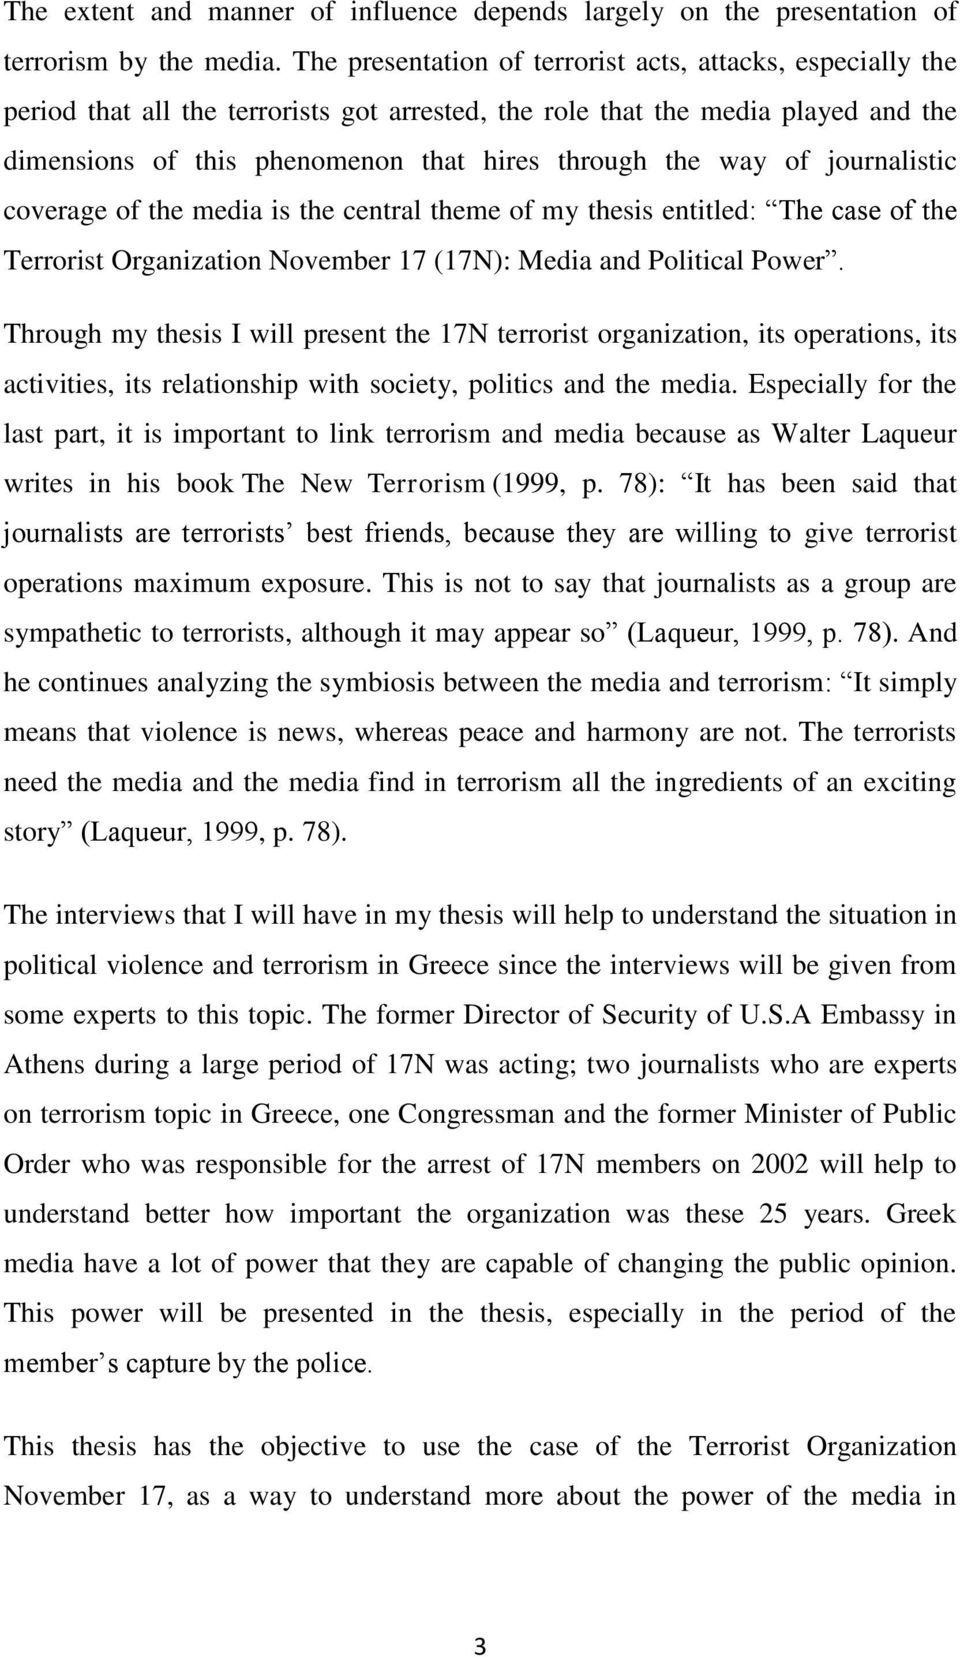 way of journalistic coverage of the media is the central theme of my thesis entitled: The case of the Terrorist Organization November 17 (17N): Media and Political Power.